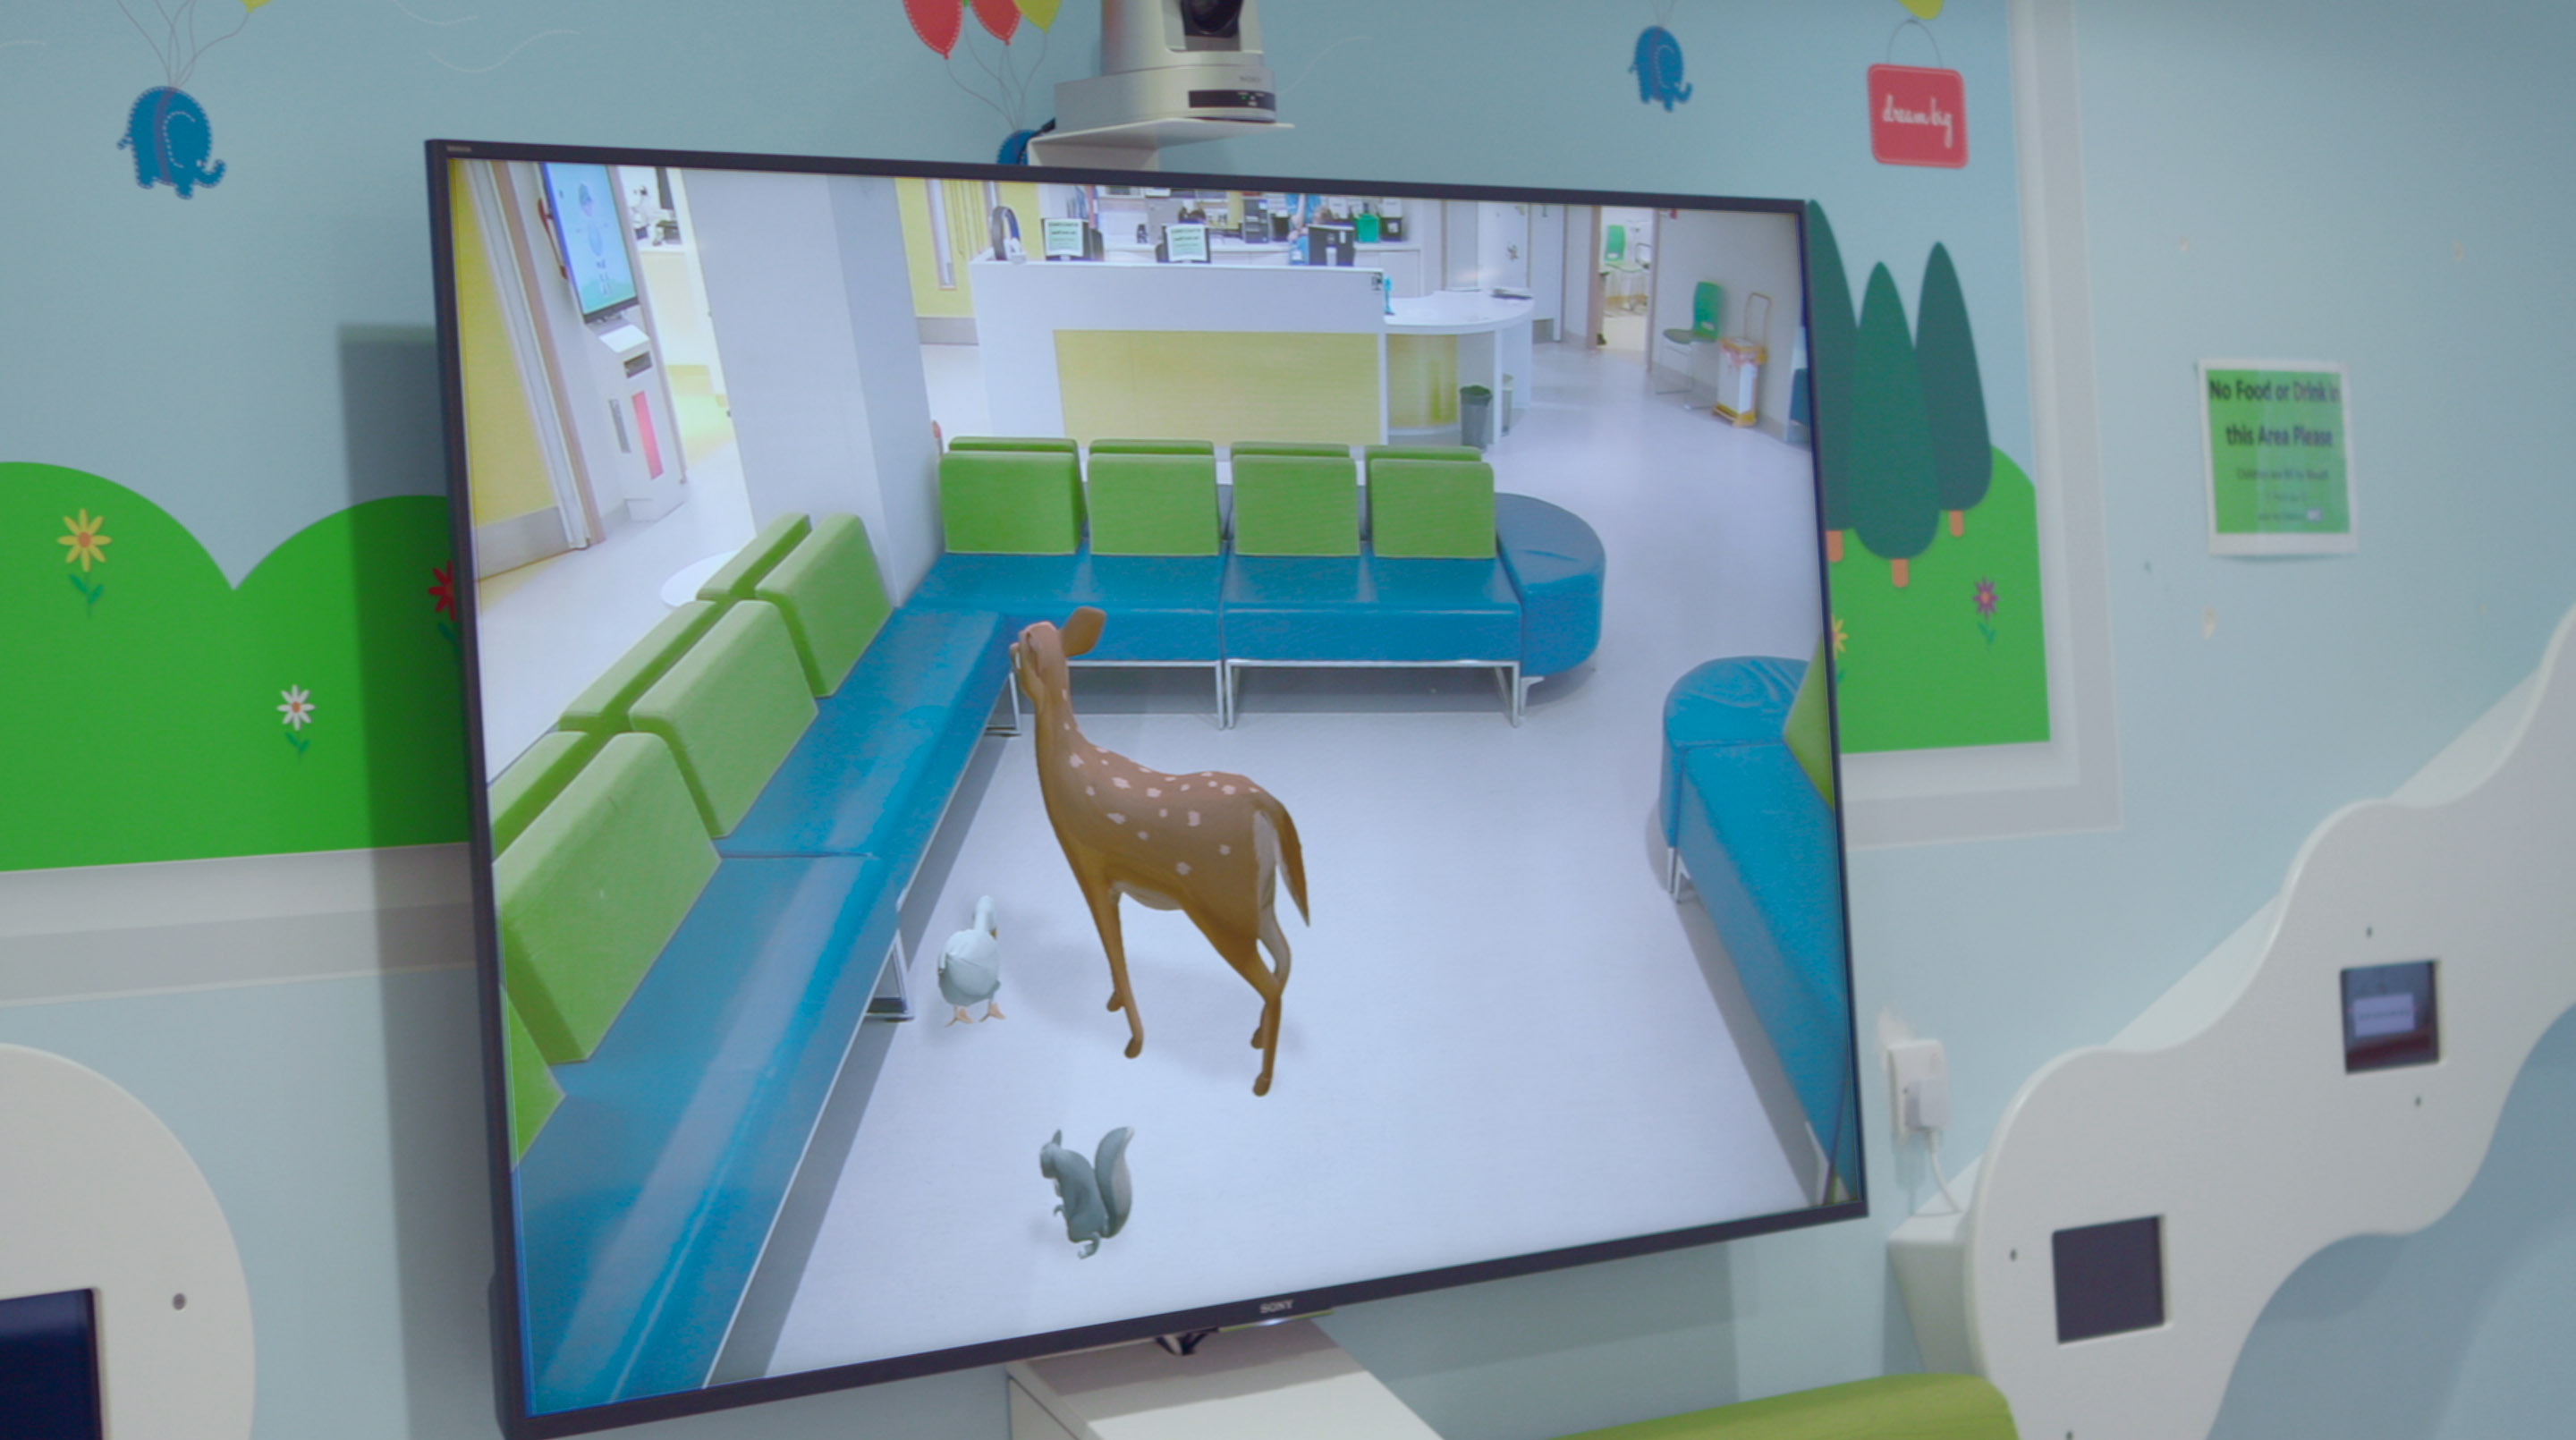 Augmented Reality Display with Forest Animals